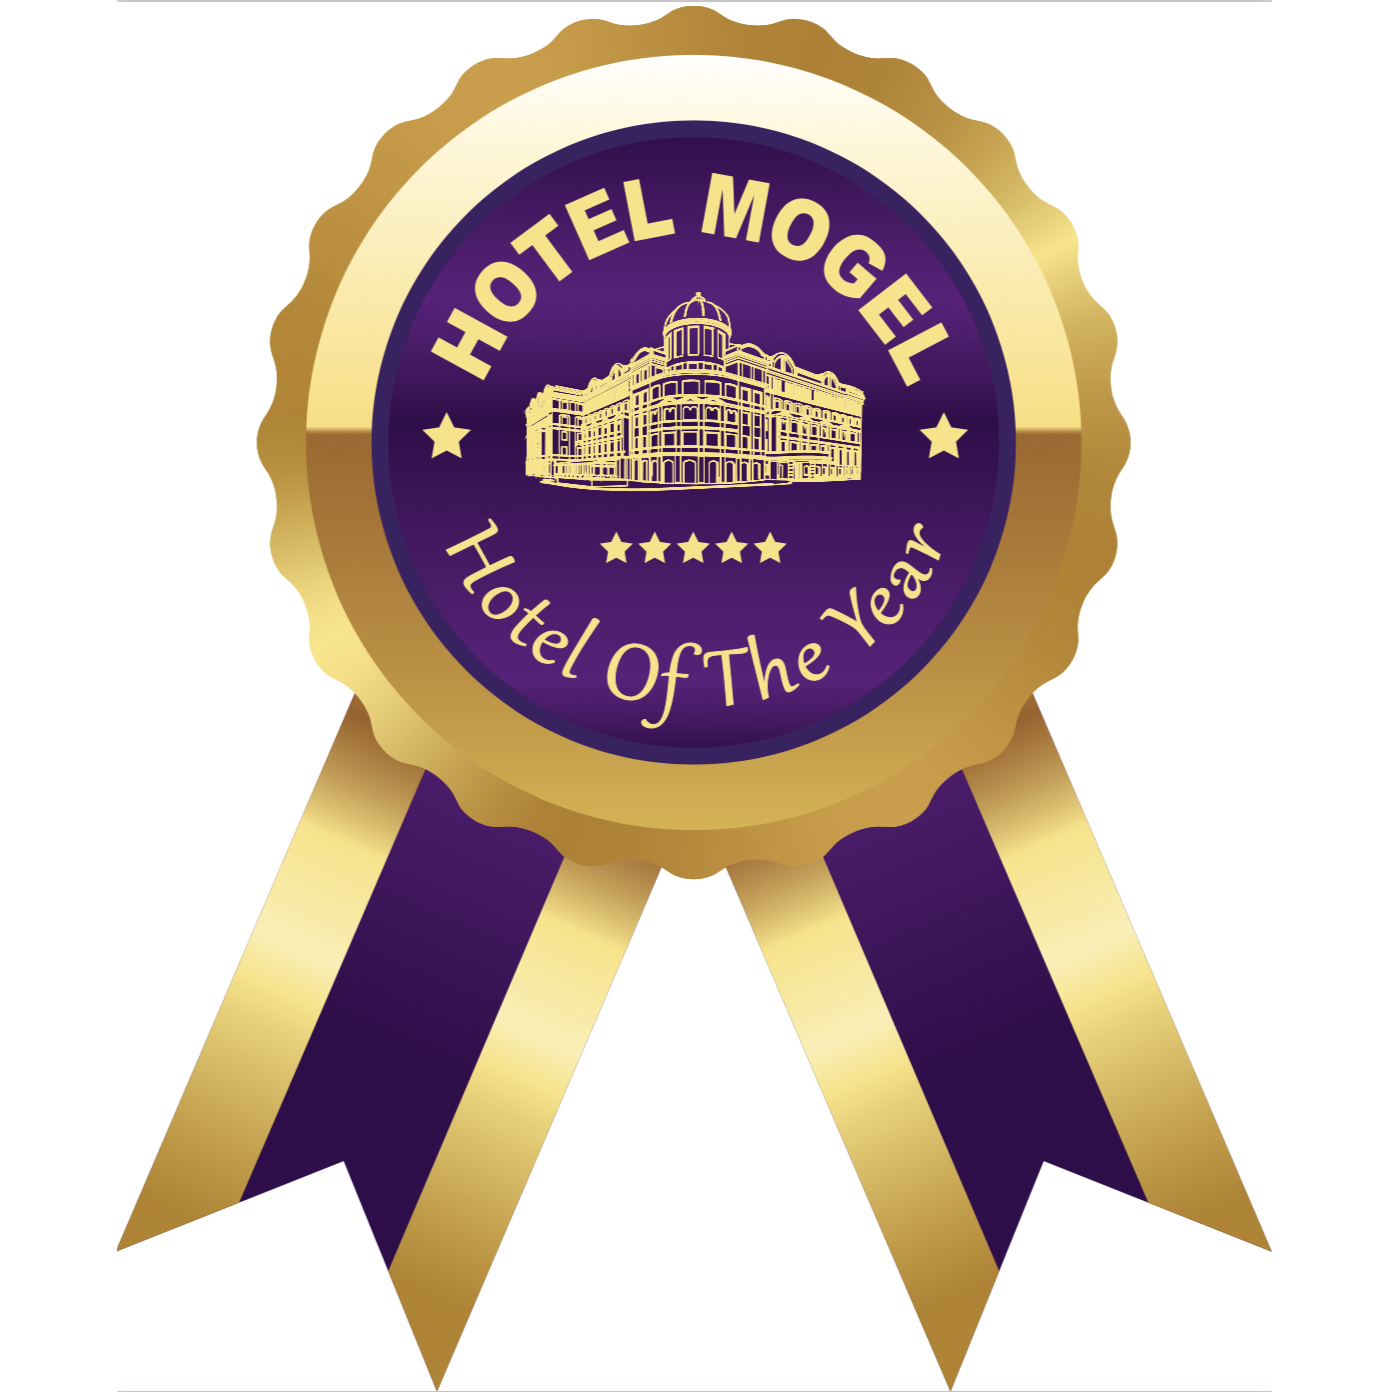 The Hotel Mogel's 2018 Hotel of the Year Awards